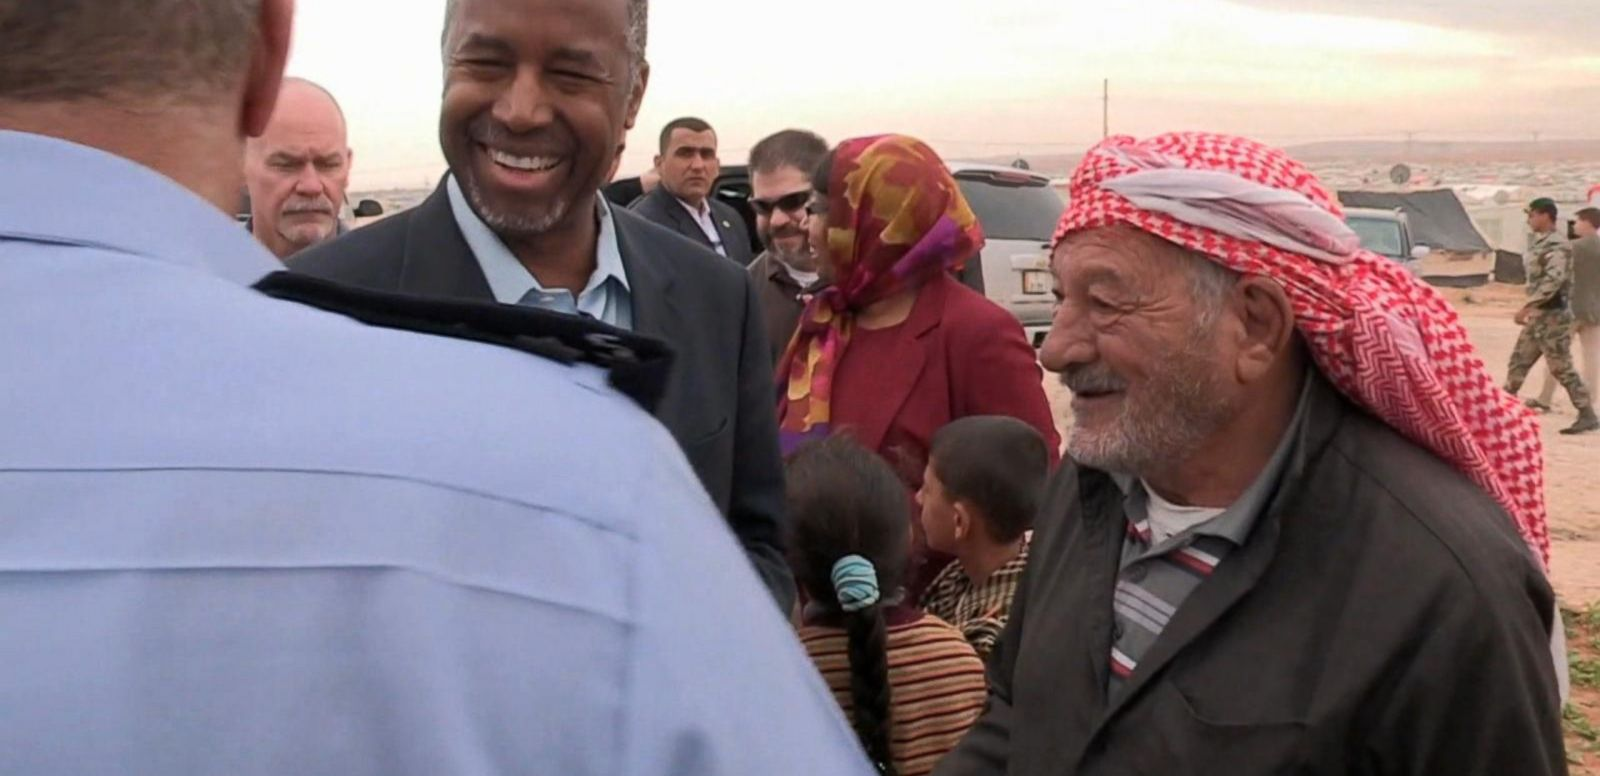 VIDEO: Republican Presidential Candidate Ben Carson Makes Surprise Trip to Jordan